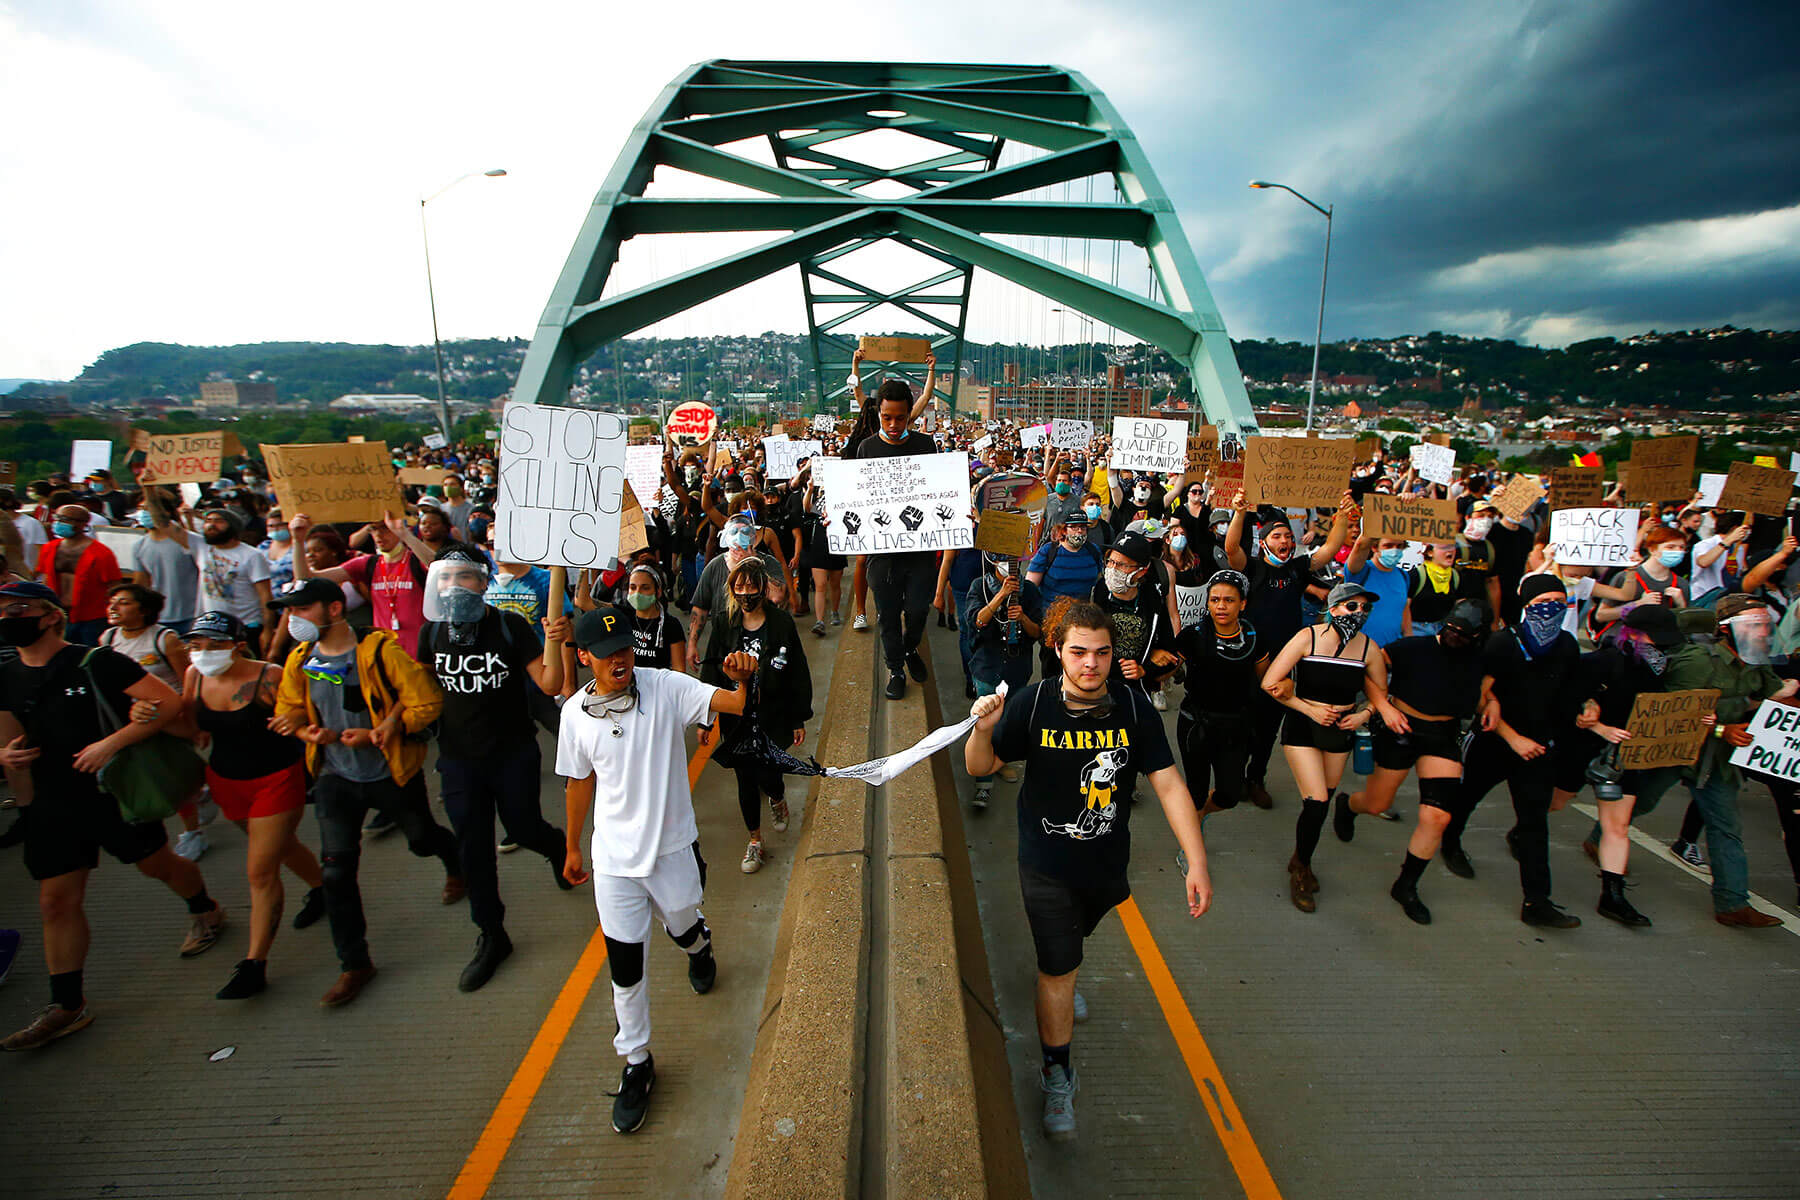 Black Lives Matter protesters march through Downtown Pittsburgh, the South Side, and the Hill District on Thu., June 4, 2020. (Photo by Jared Wickerham/Pittsburgh City Paper)